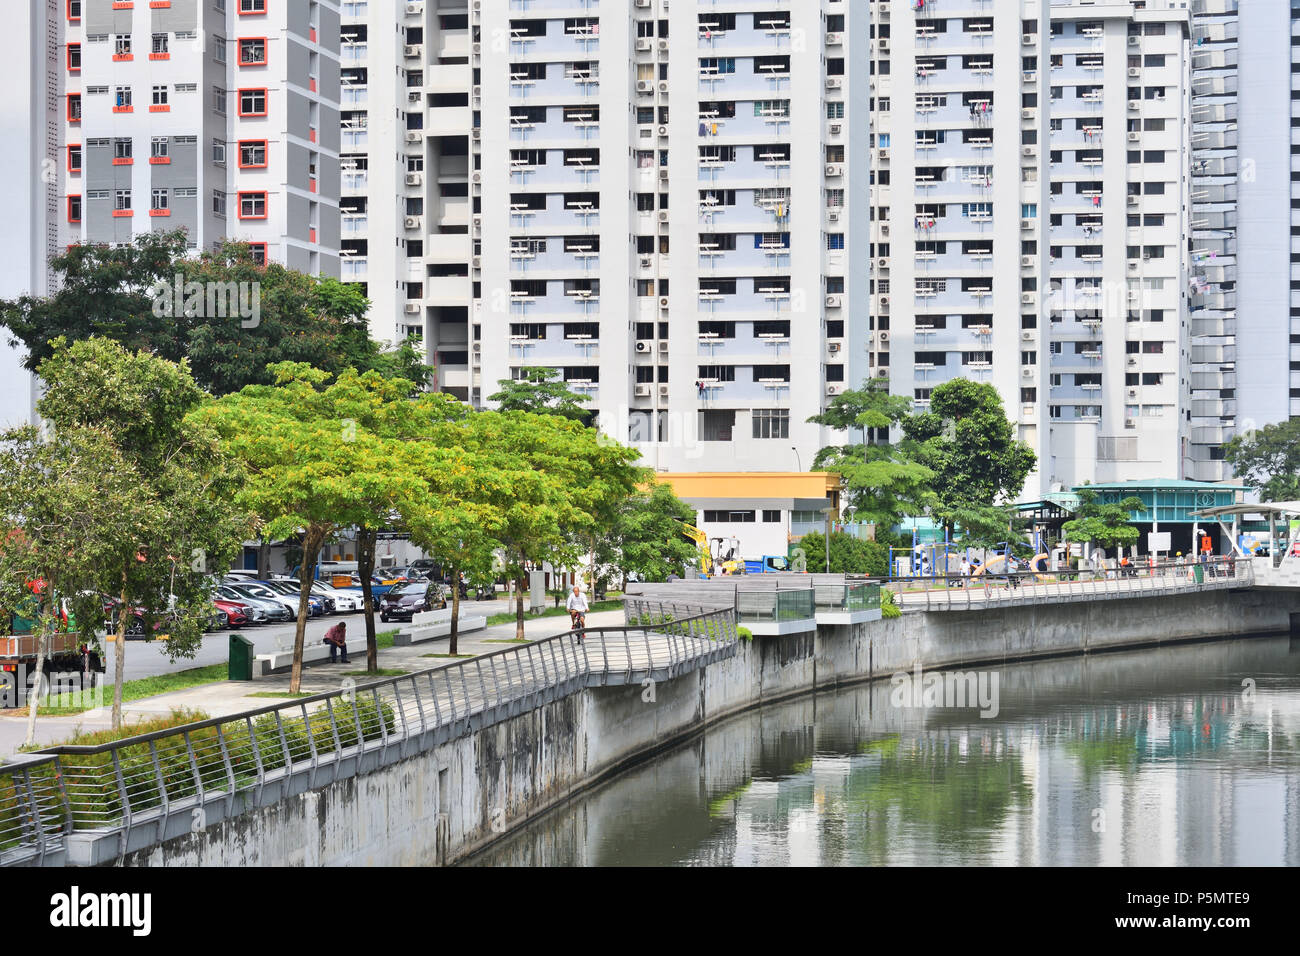 A residential area along the Rochor Canal and North Bridge Road. This looks at government-subsidized 'public housing' HDB flats in a heartland. - Stock Image